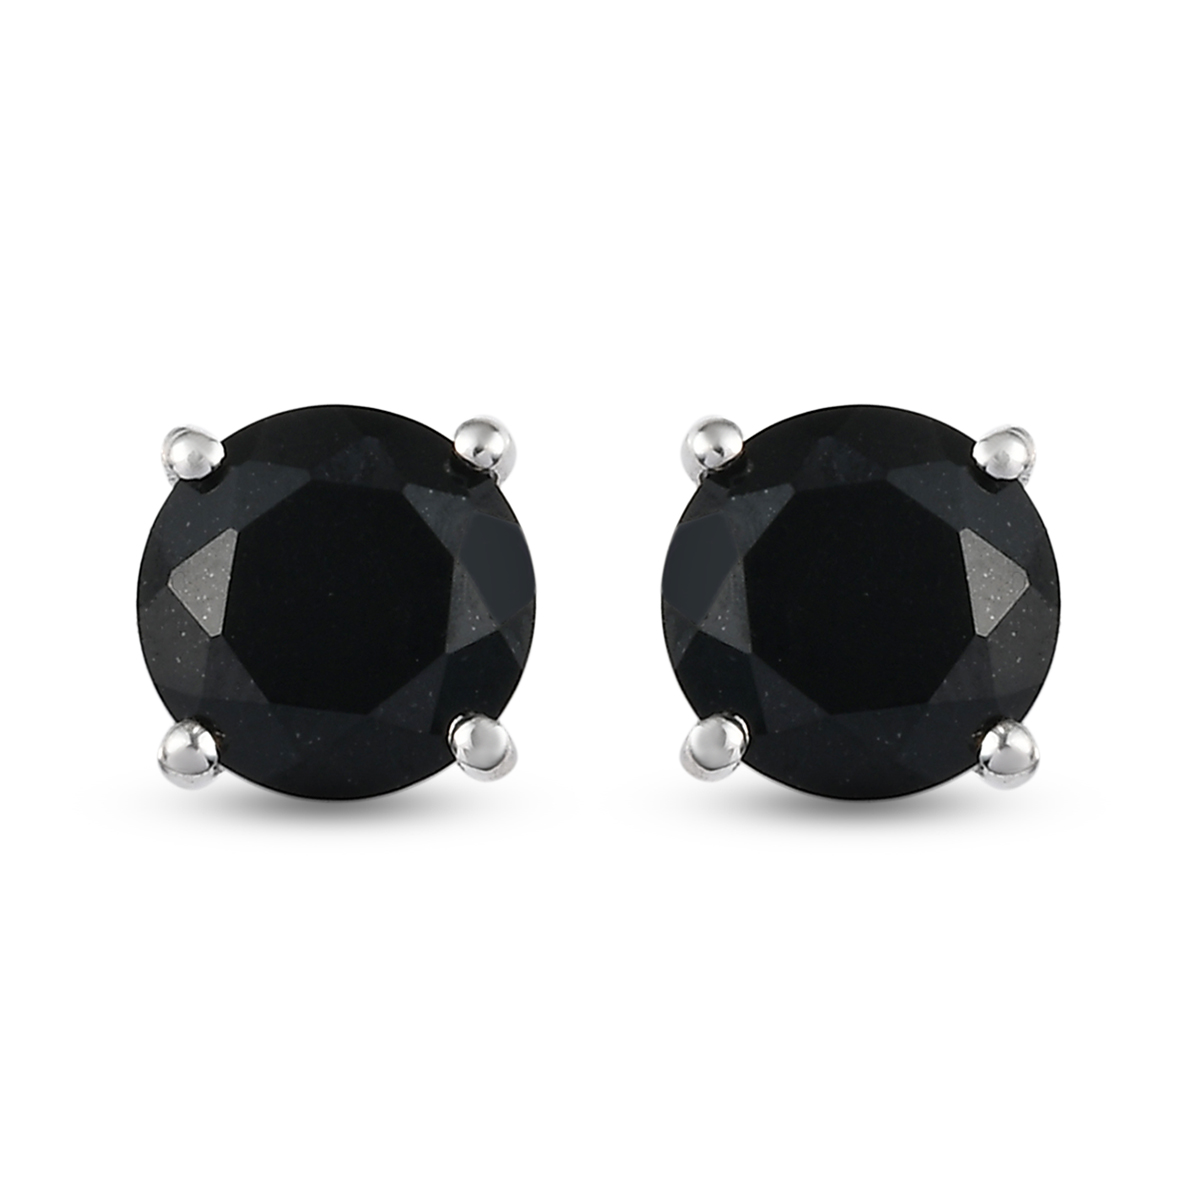 e589e7382 Australian Black Tourmaline Platinum Over Sterling Silver Stud Earrings TGW  4.22 cts. | Shop LC